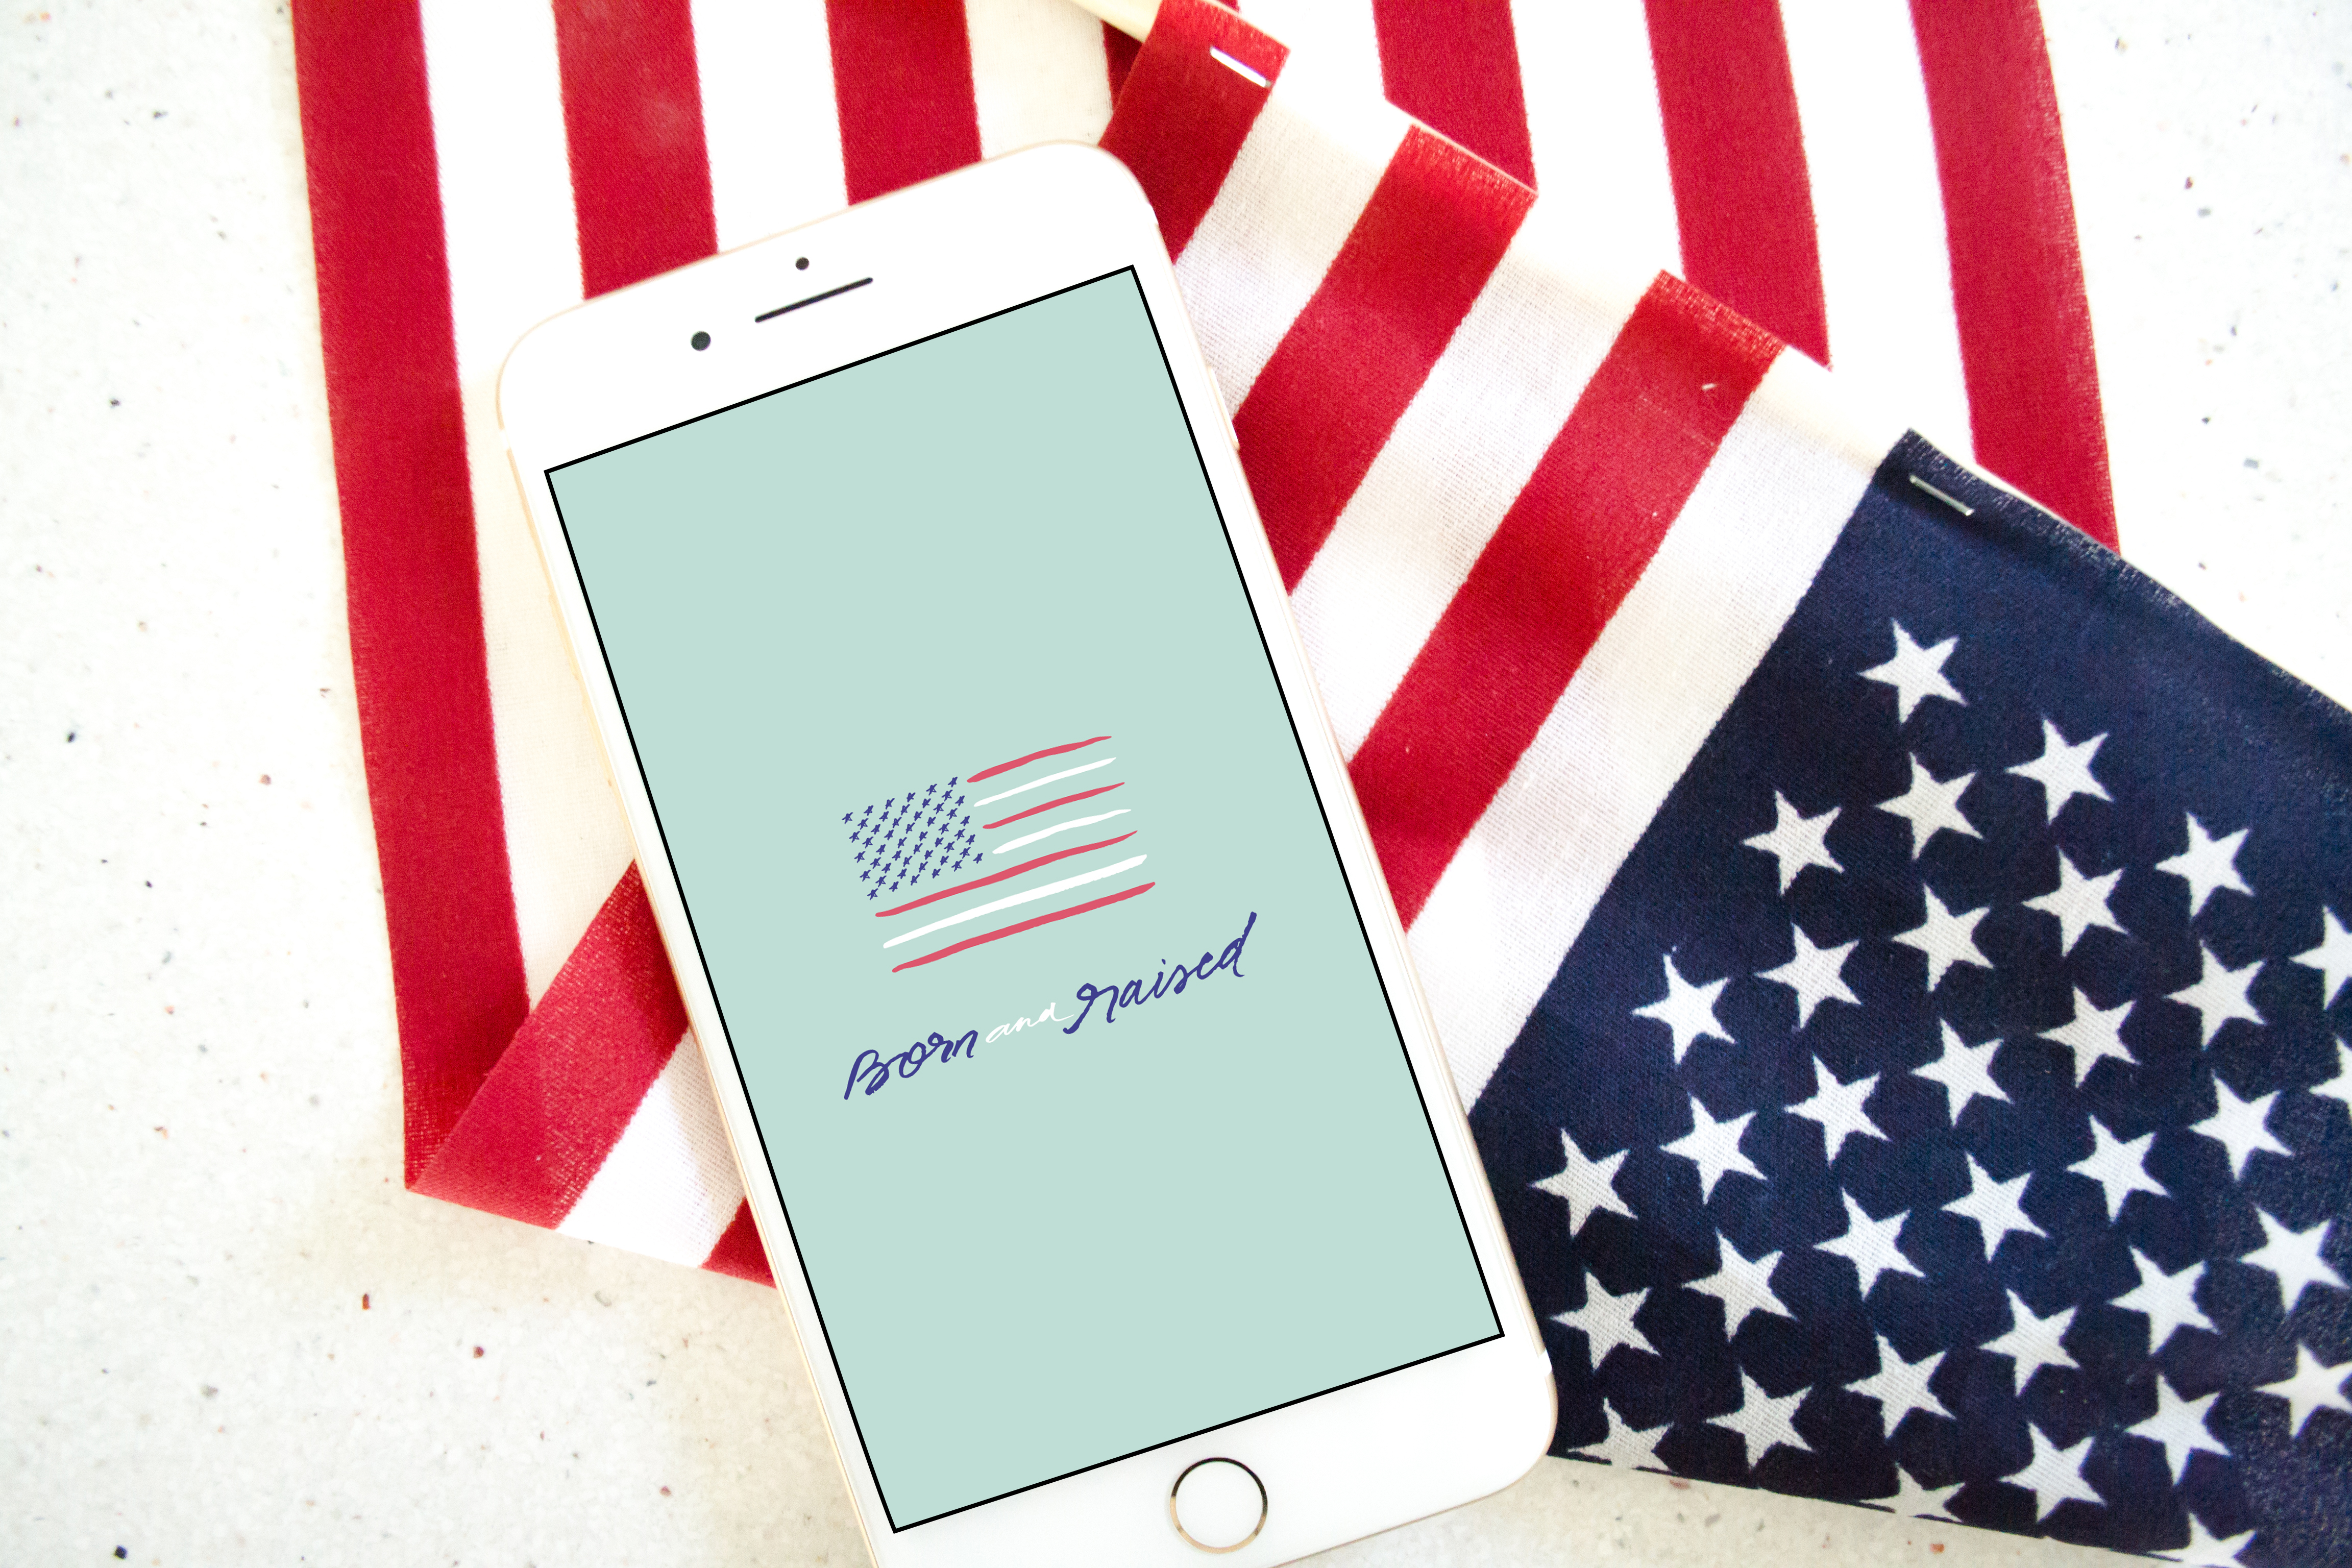 Styldbygrace_PatrioticWallpapers2017_01